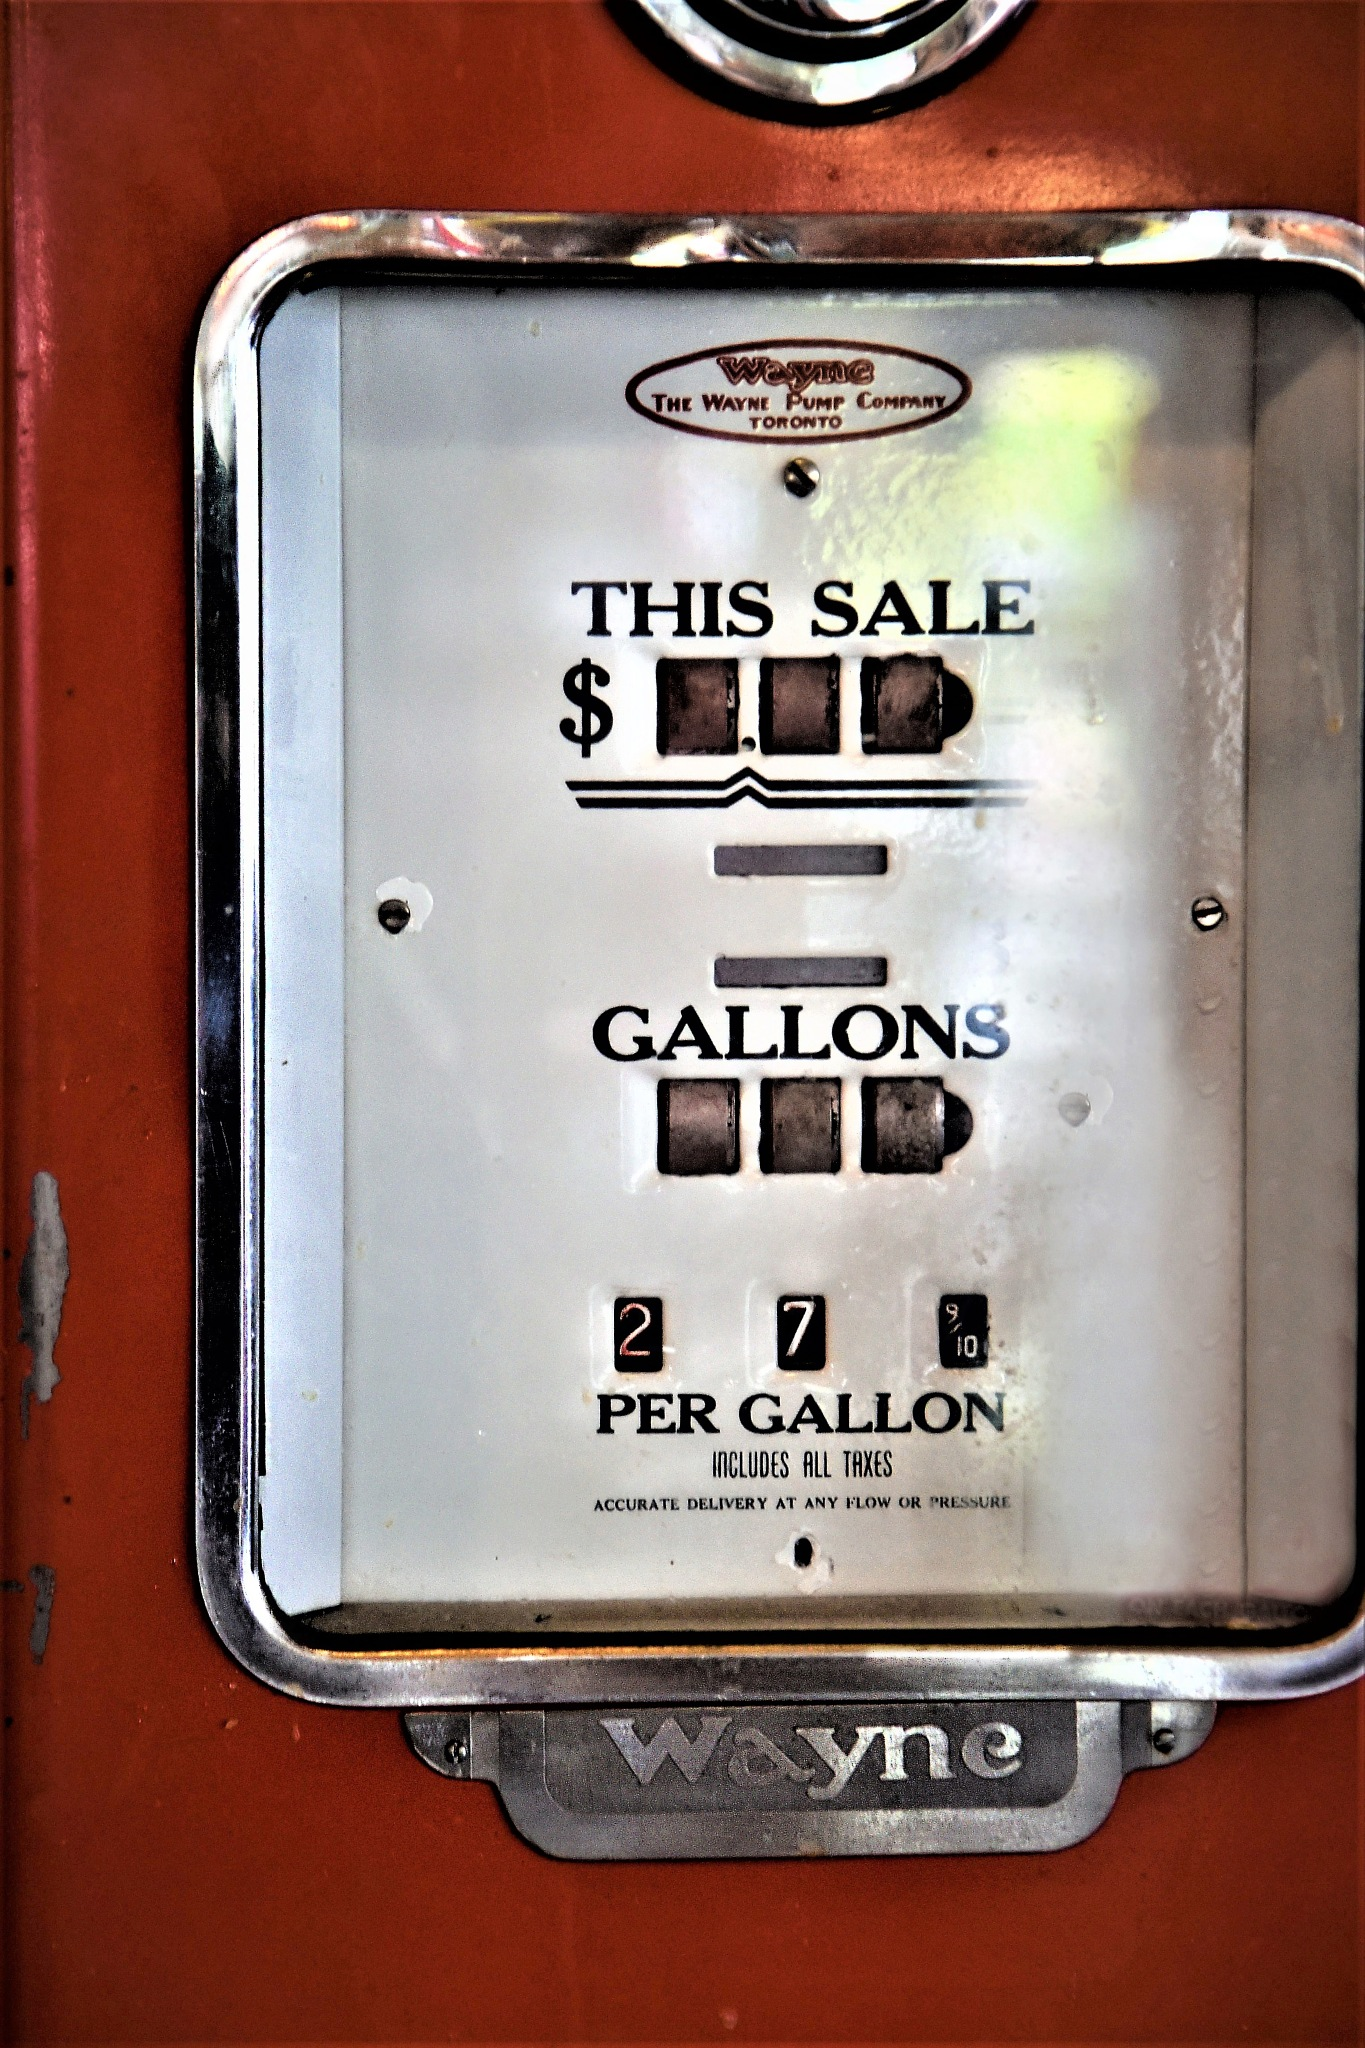 Along long time ago..... 27 cents per gallon by Pasqual